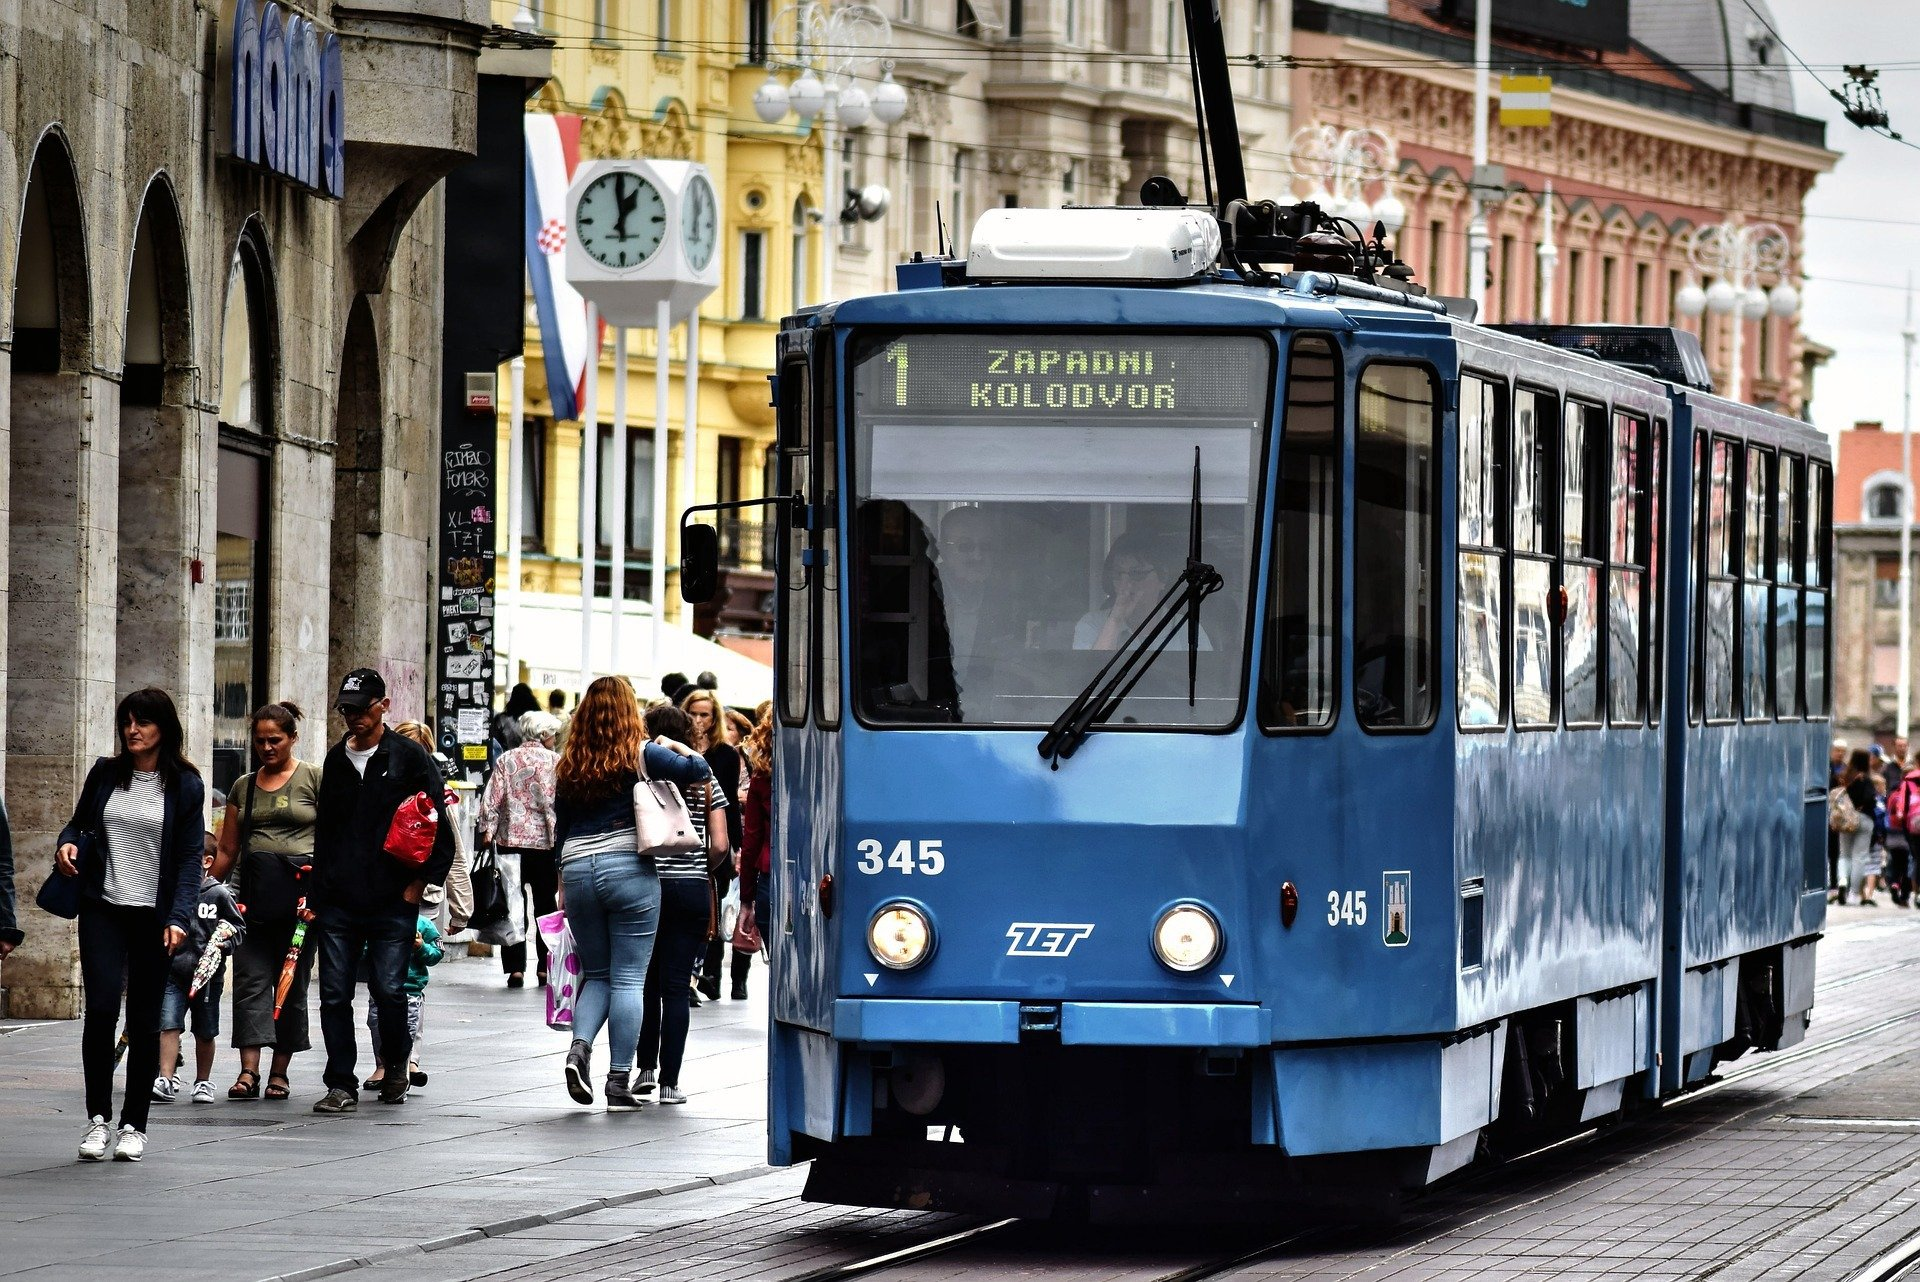 Stay in Zagreb's exciting Lower Town to explore the city's top landmarks.